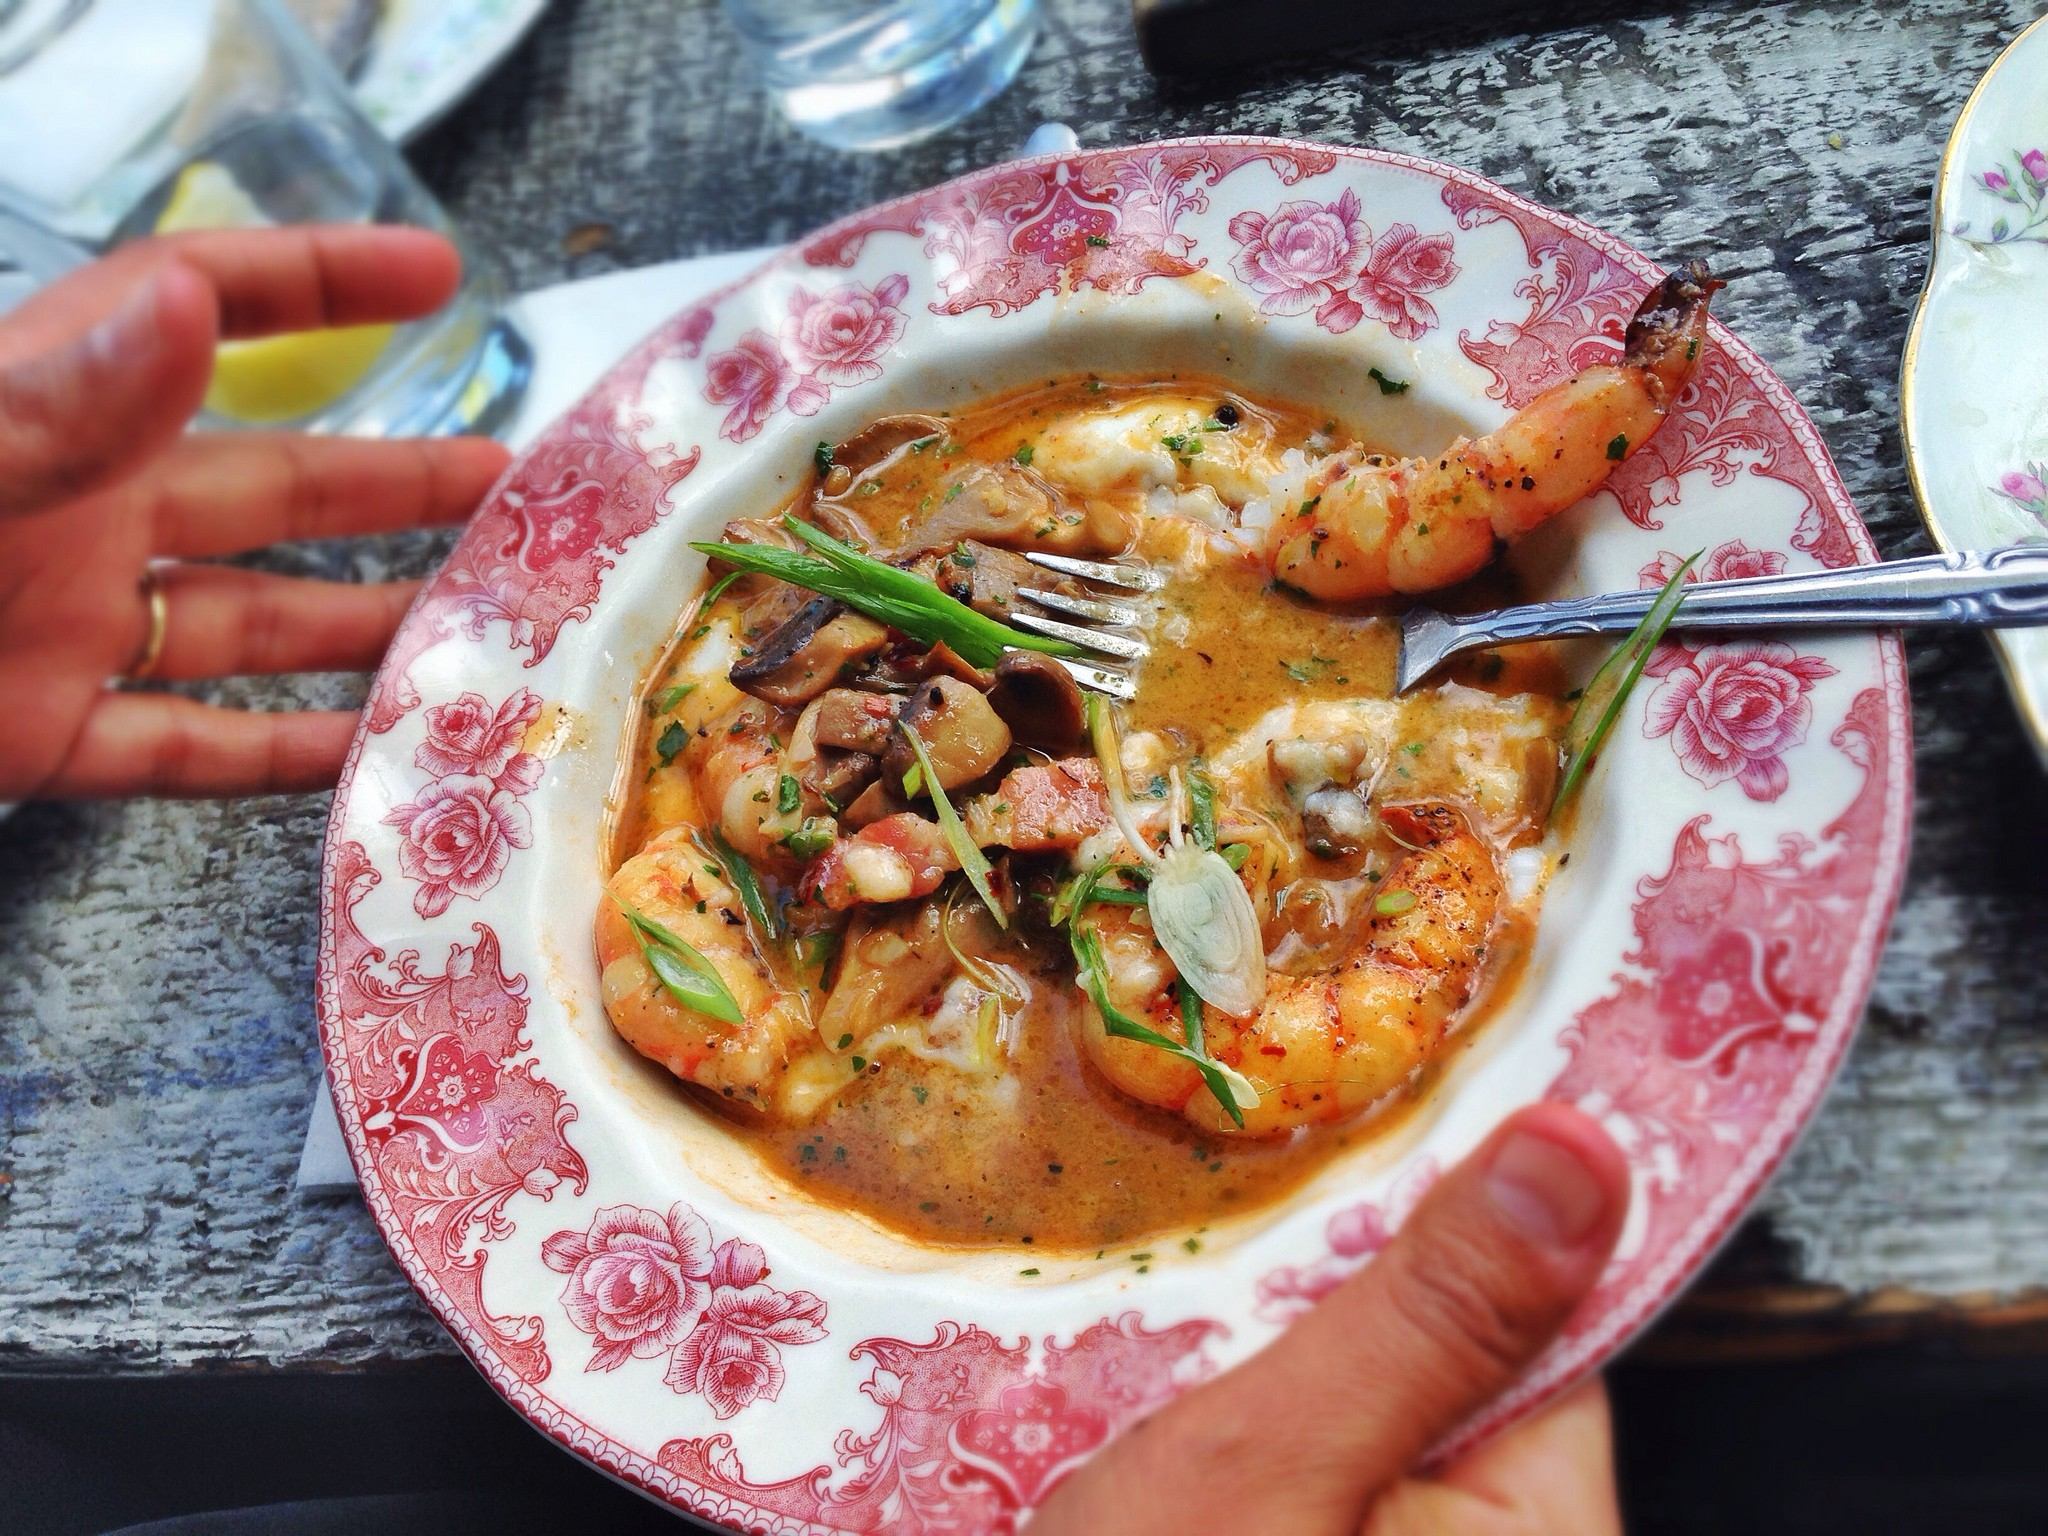 Shrimp and grits, bacon, mushroom, scallion | © T.Tseng/Flickr